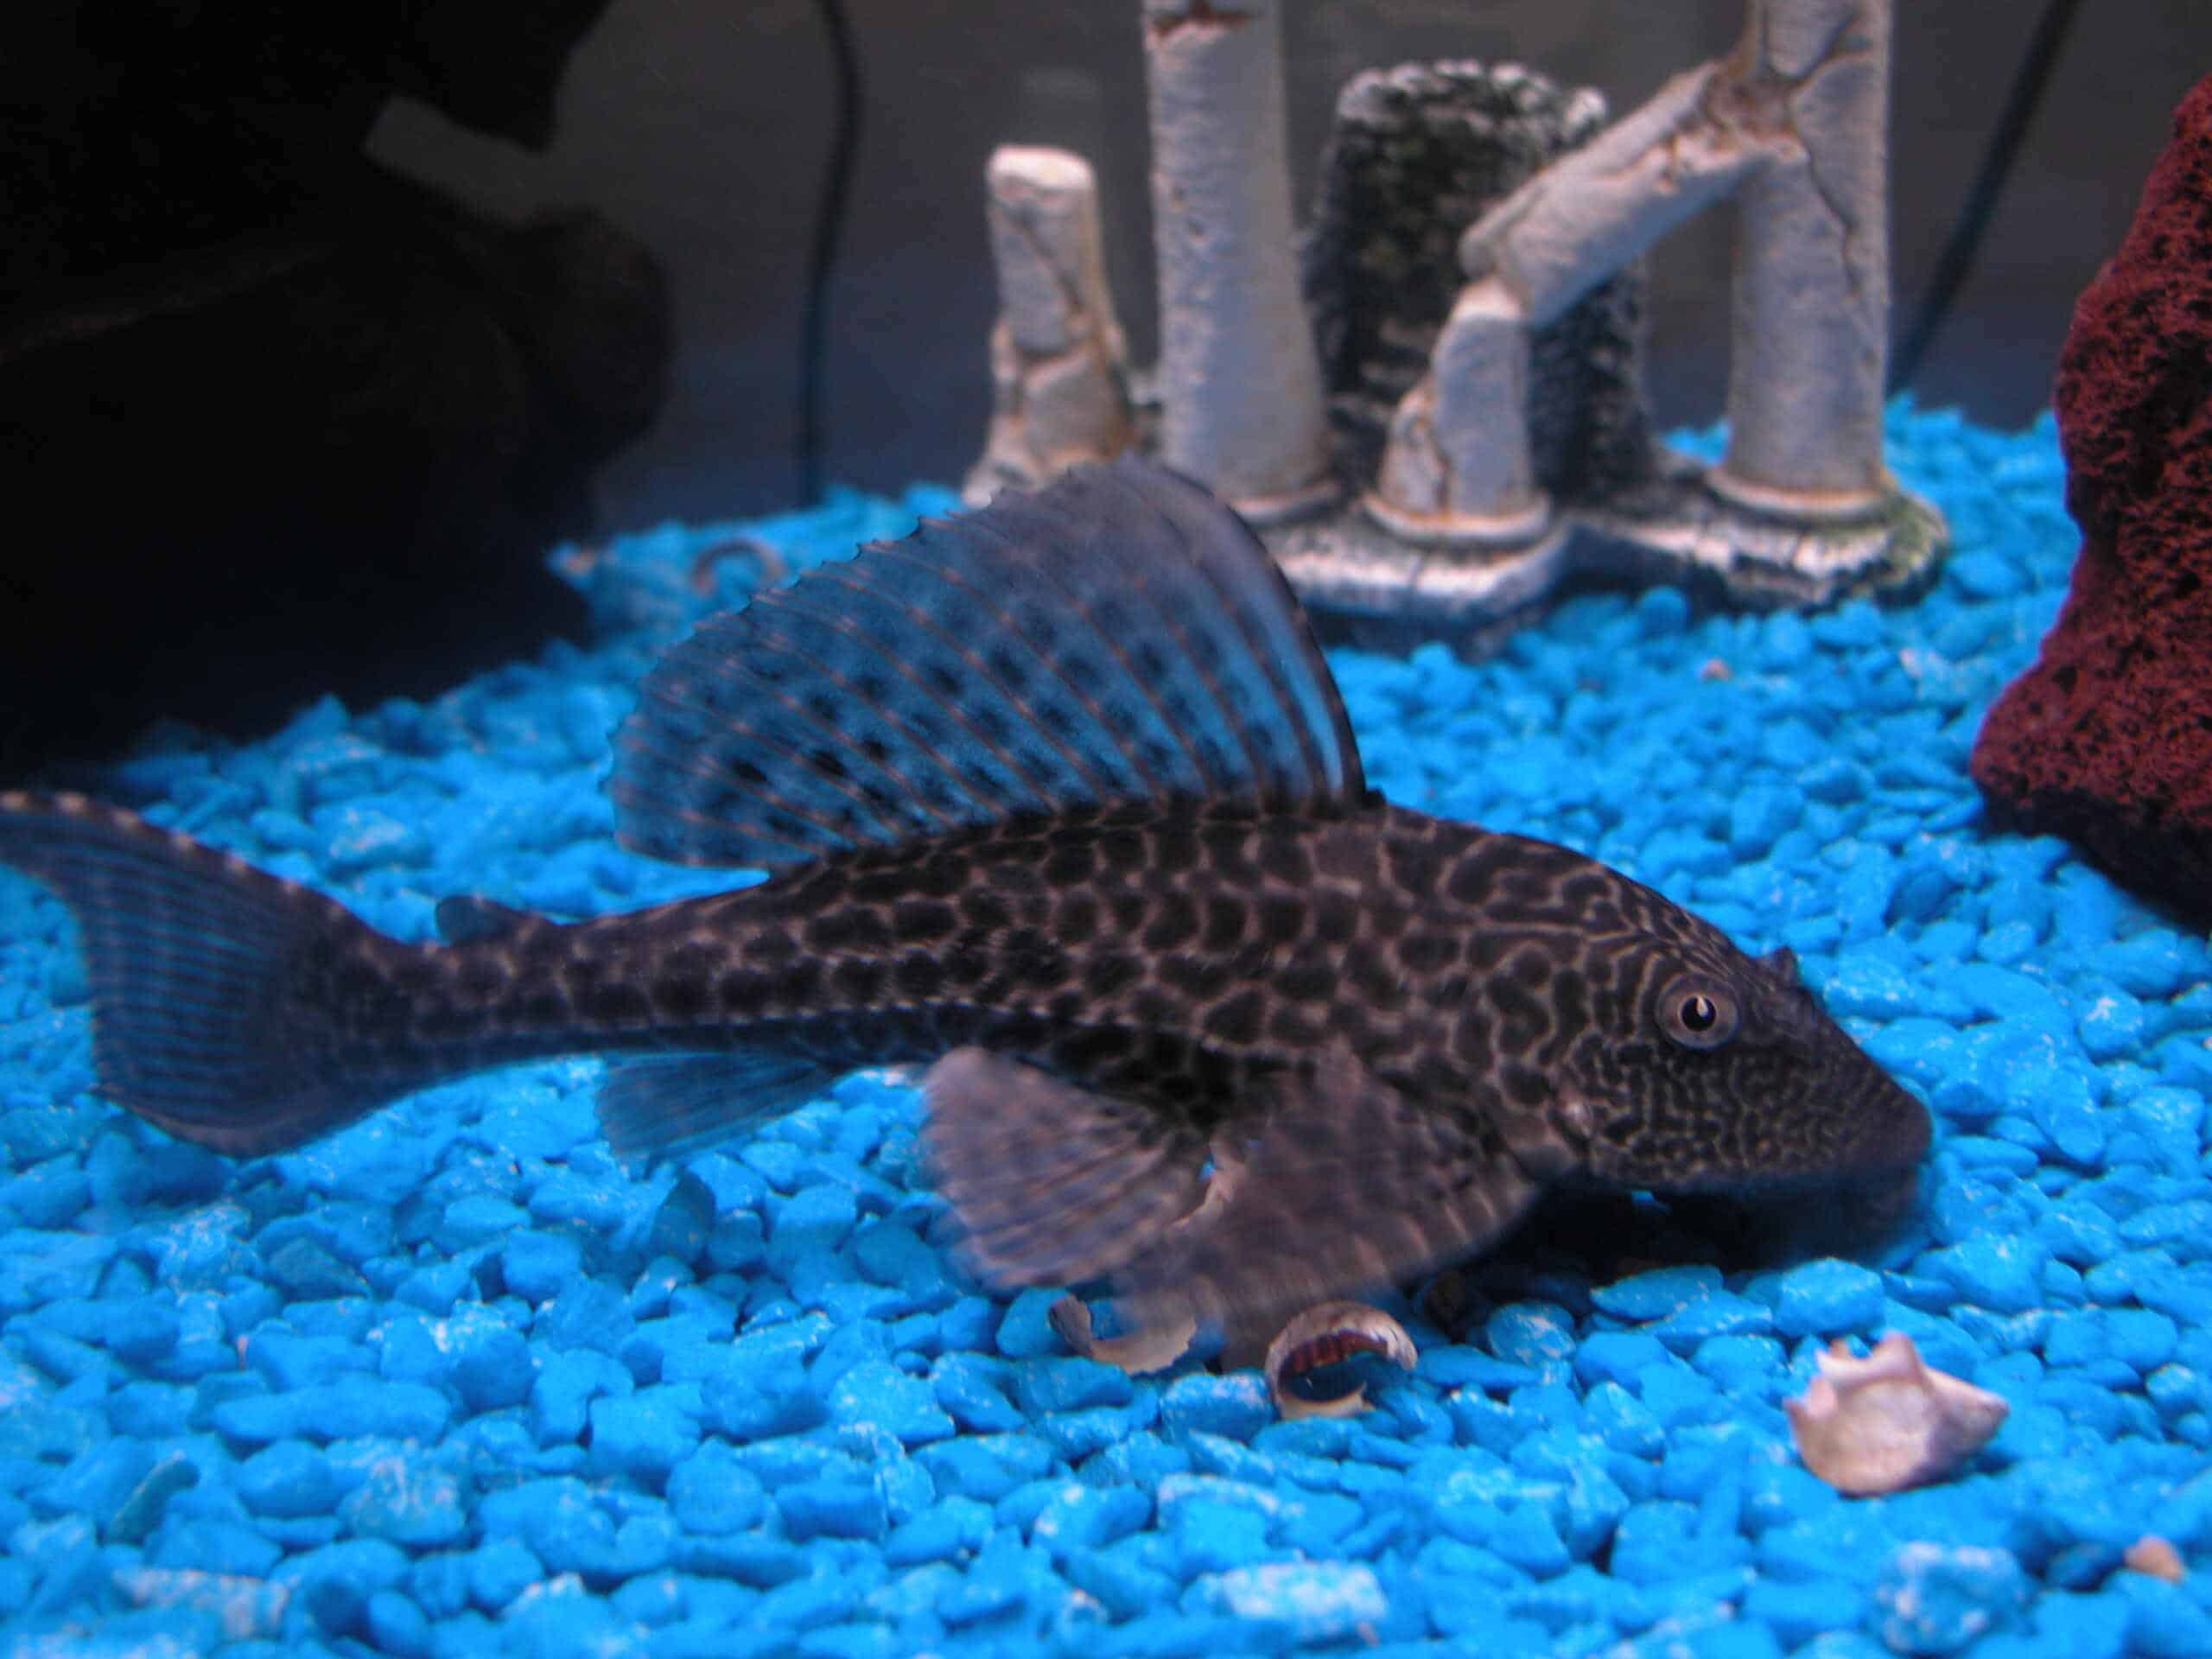 A fish in blue colored artificial aquarium pebbles https://commons.wikimedia.org/wiki/File:2004-02-02_Pterygoplichthys_pardalis_on_blue_gravel.jpg